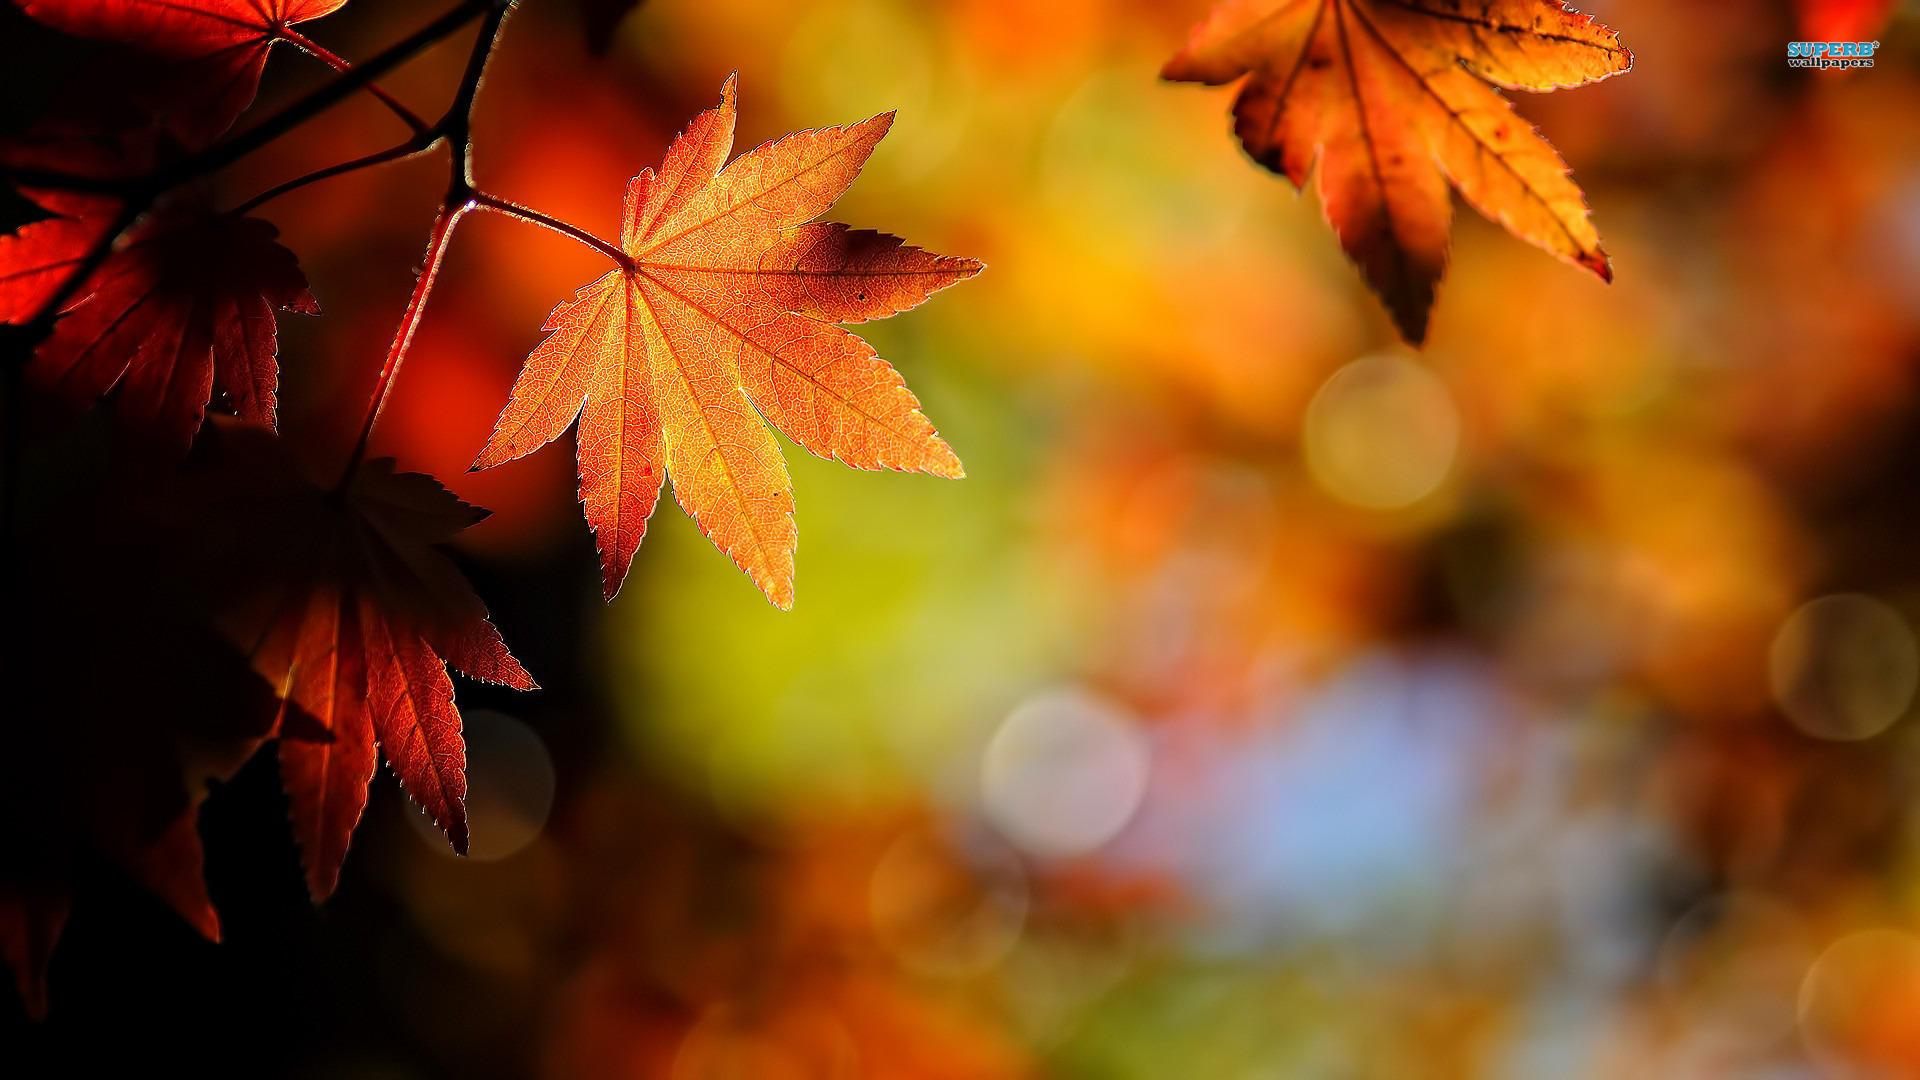 Autumn Leaves Hd Background Wallpaper 53 HD Wallpapers